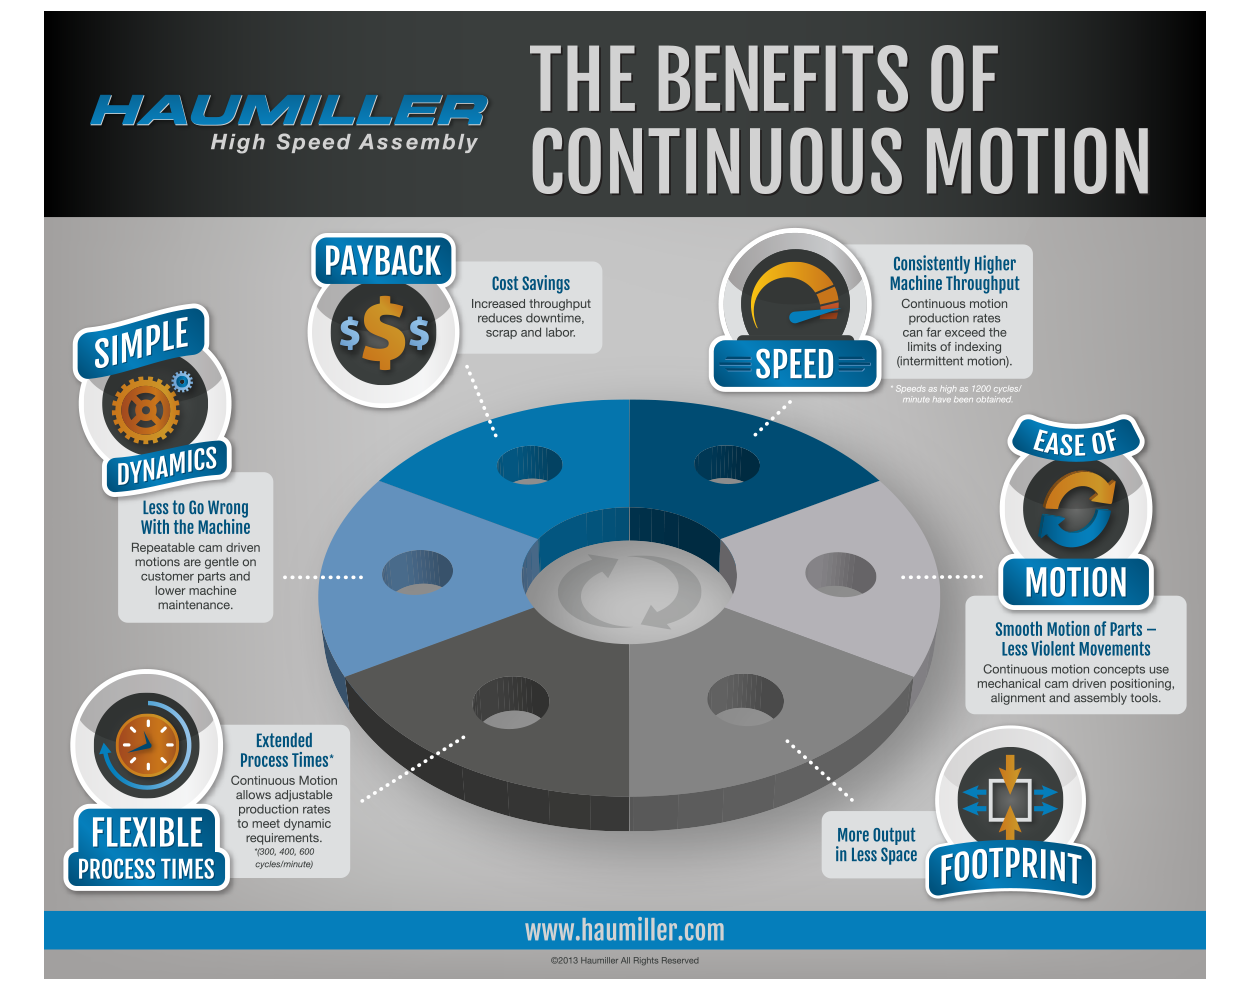 Haumilled flat infographic